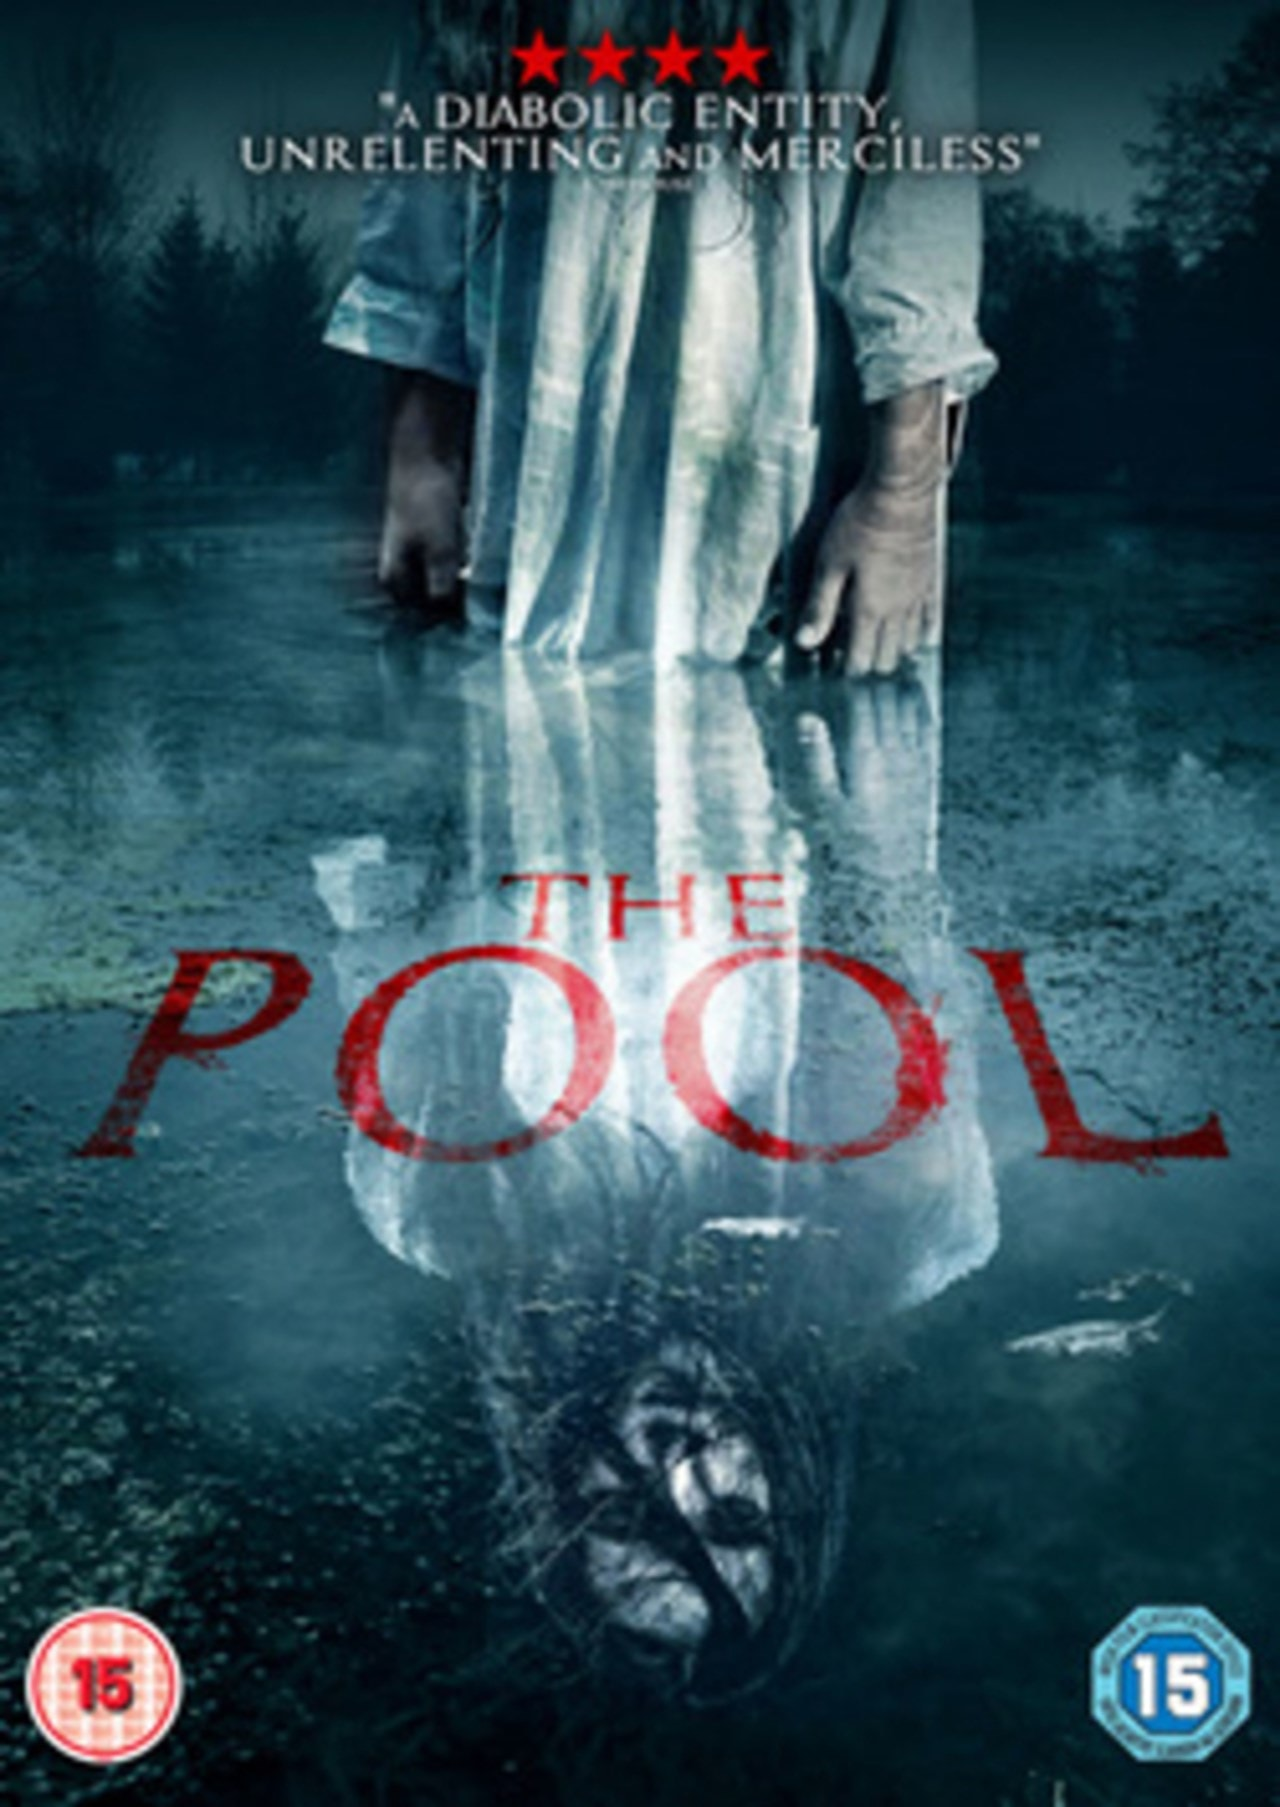 The Pool - 1